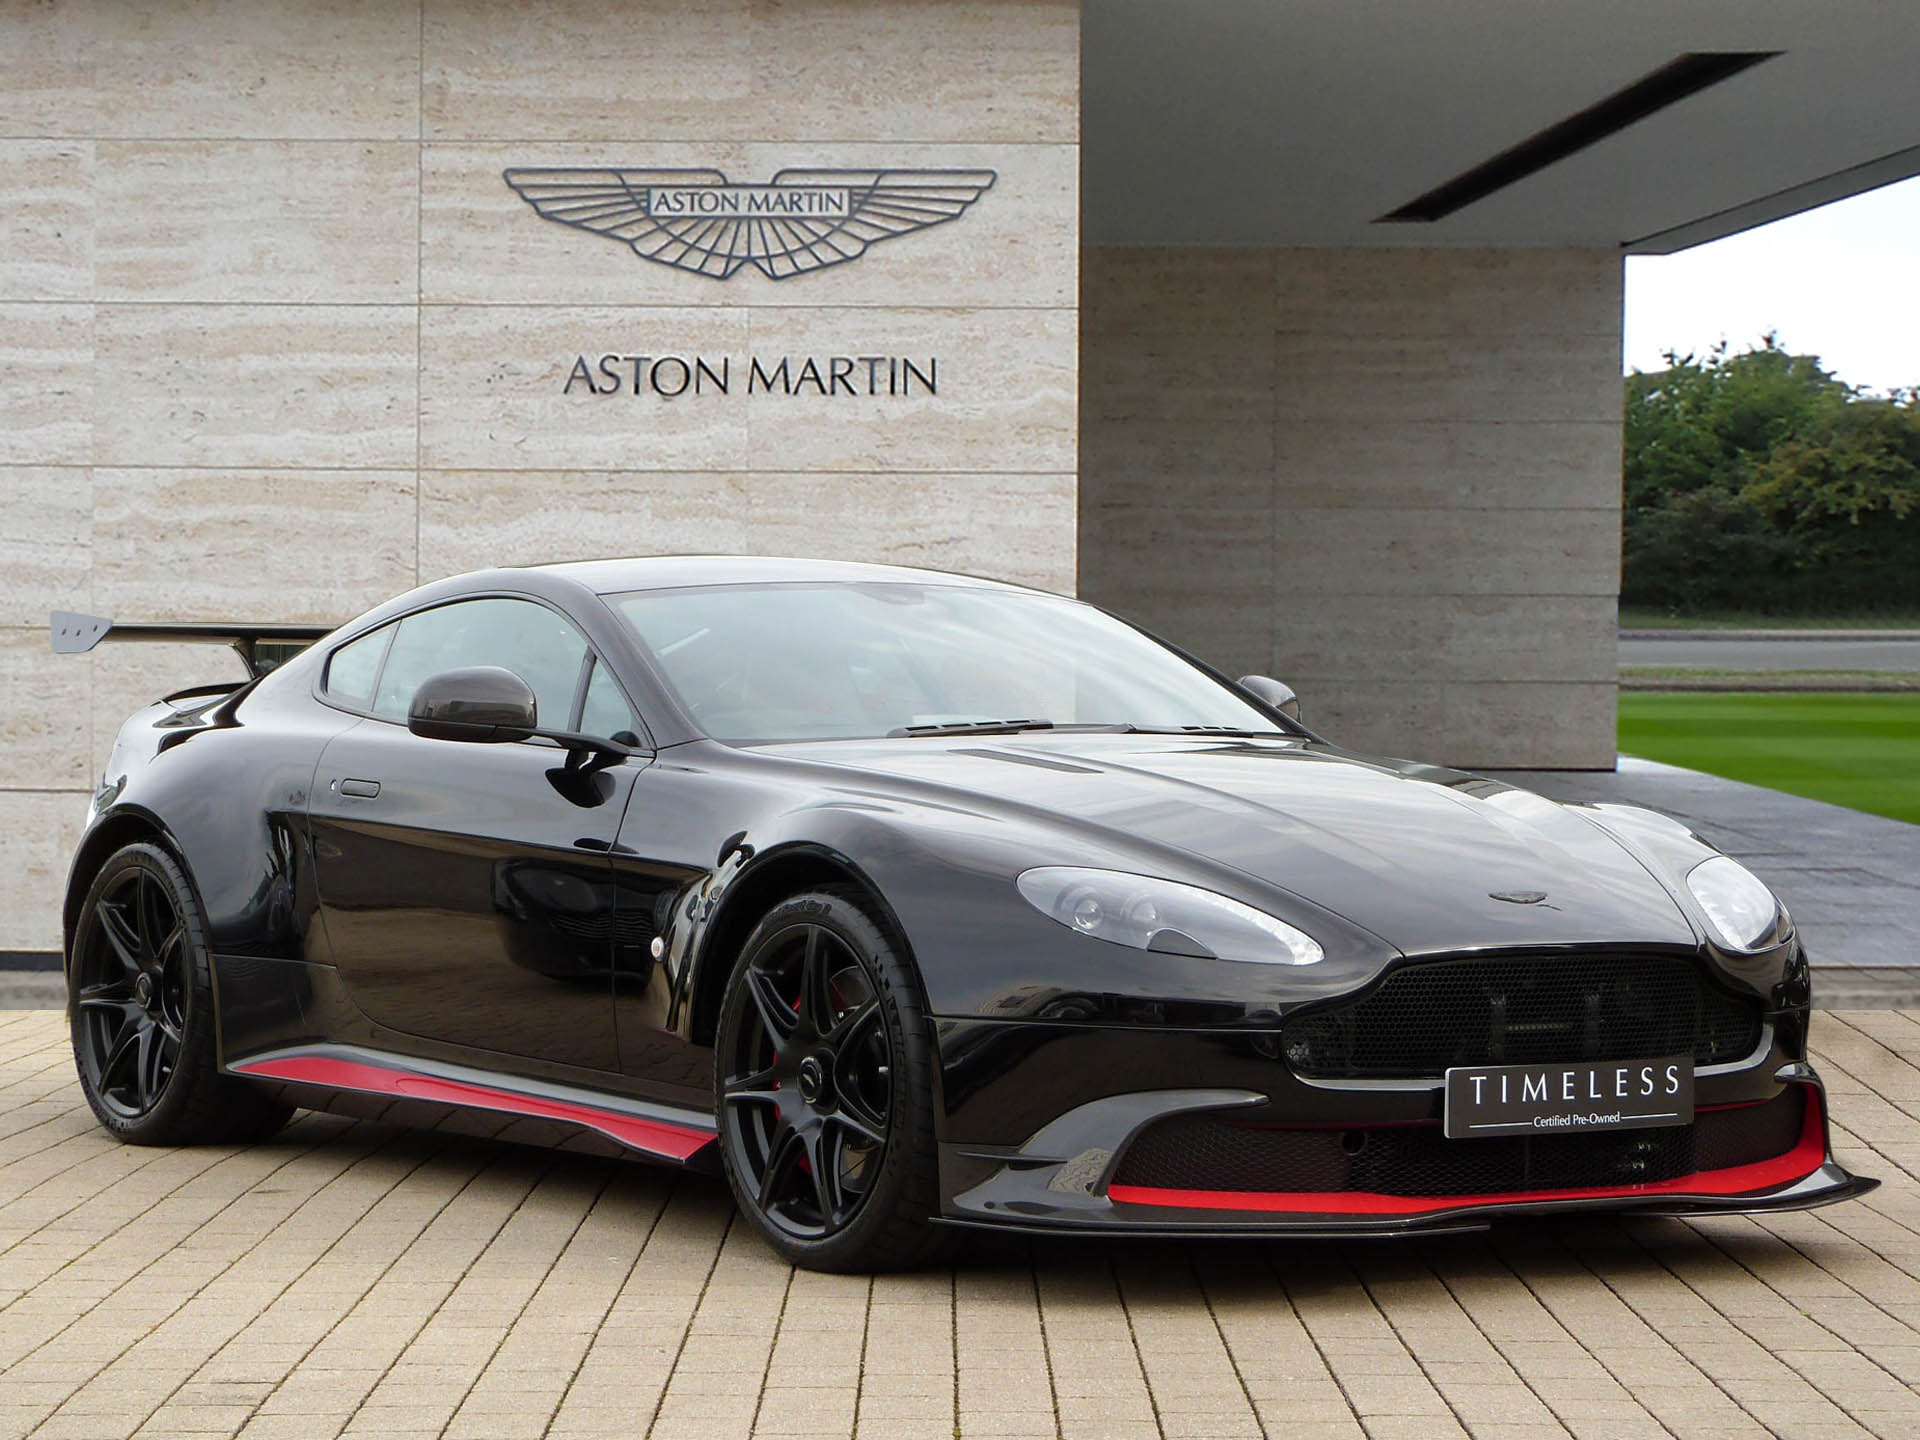 H.R. Owen Lists Another Ultra-Rare Aston Martin